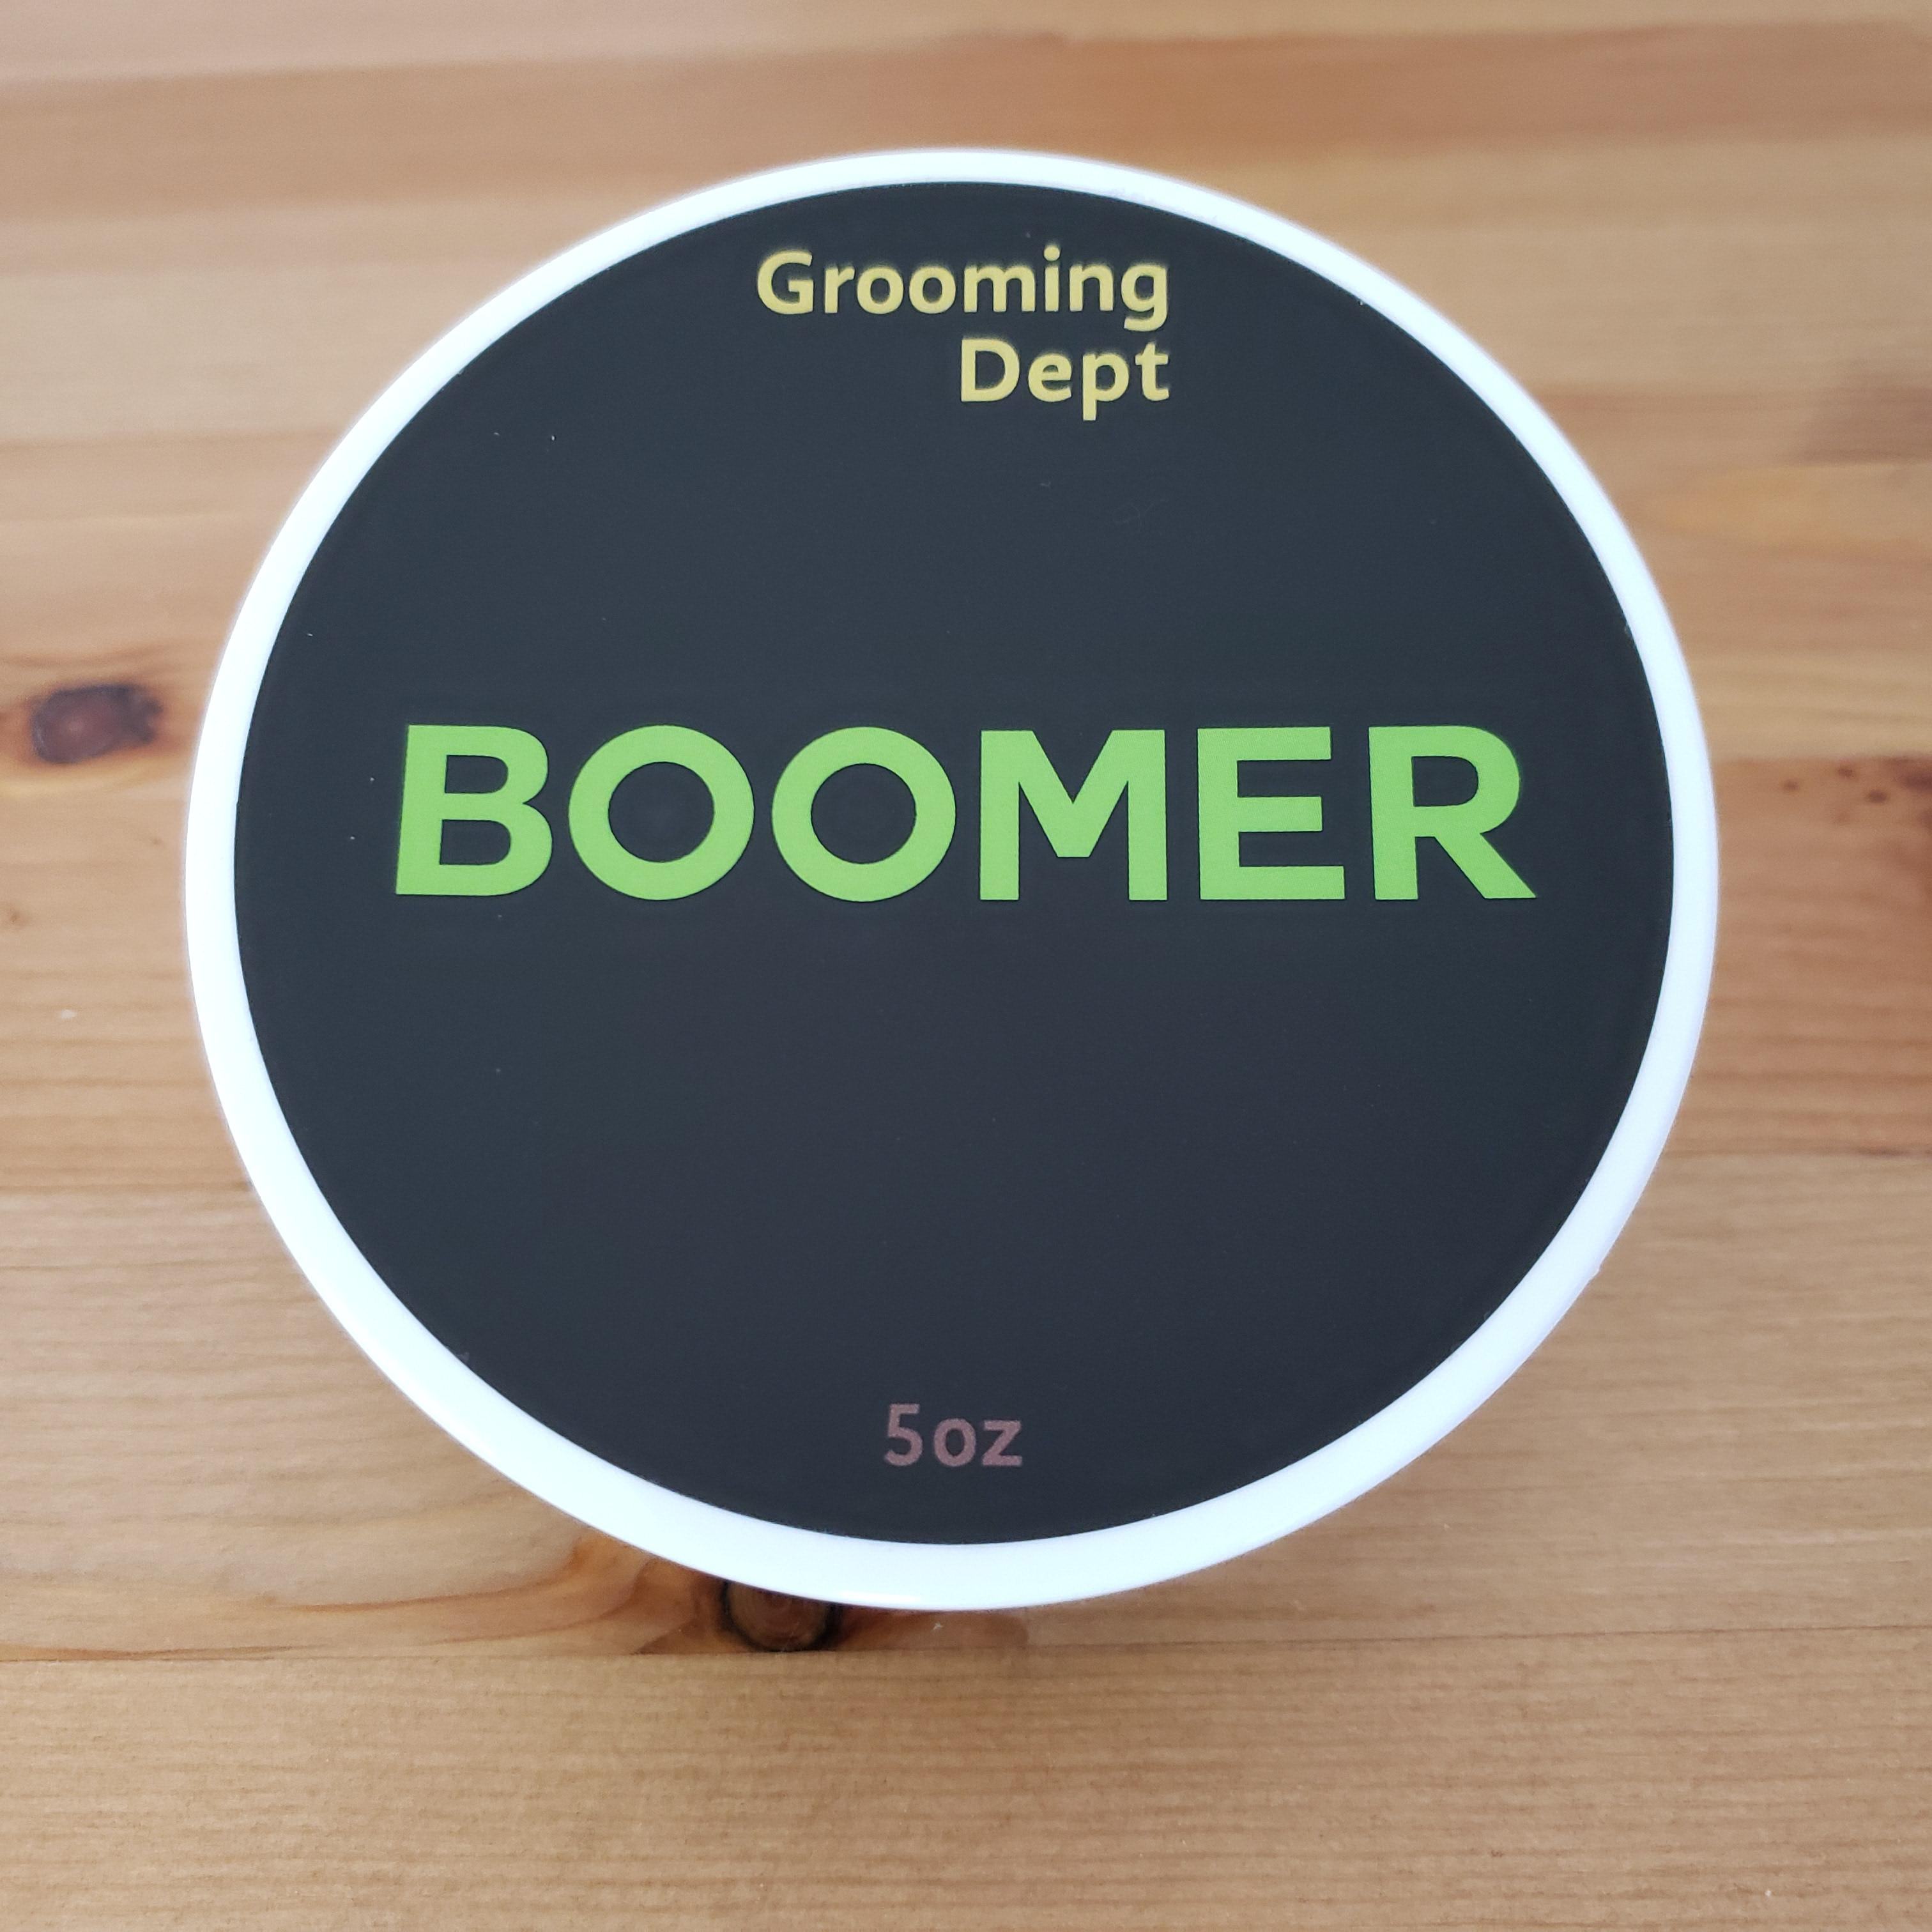 Grooming Dept - Boomer - Soap image